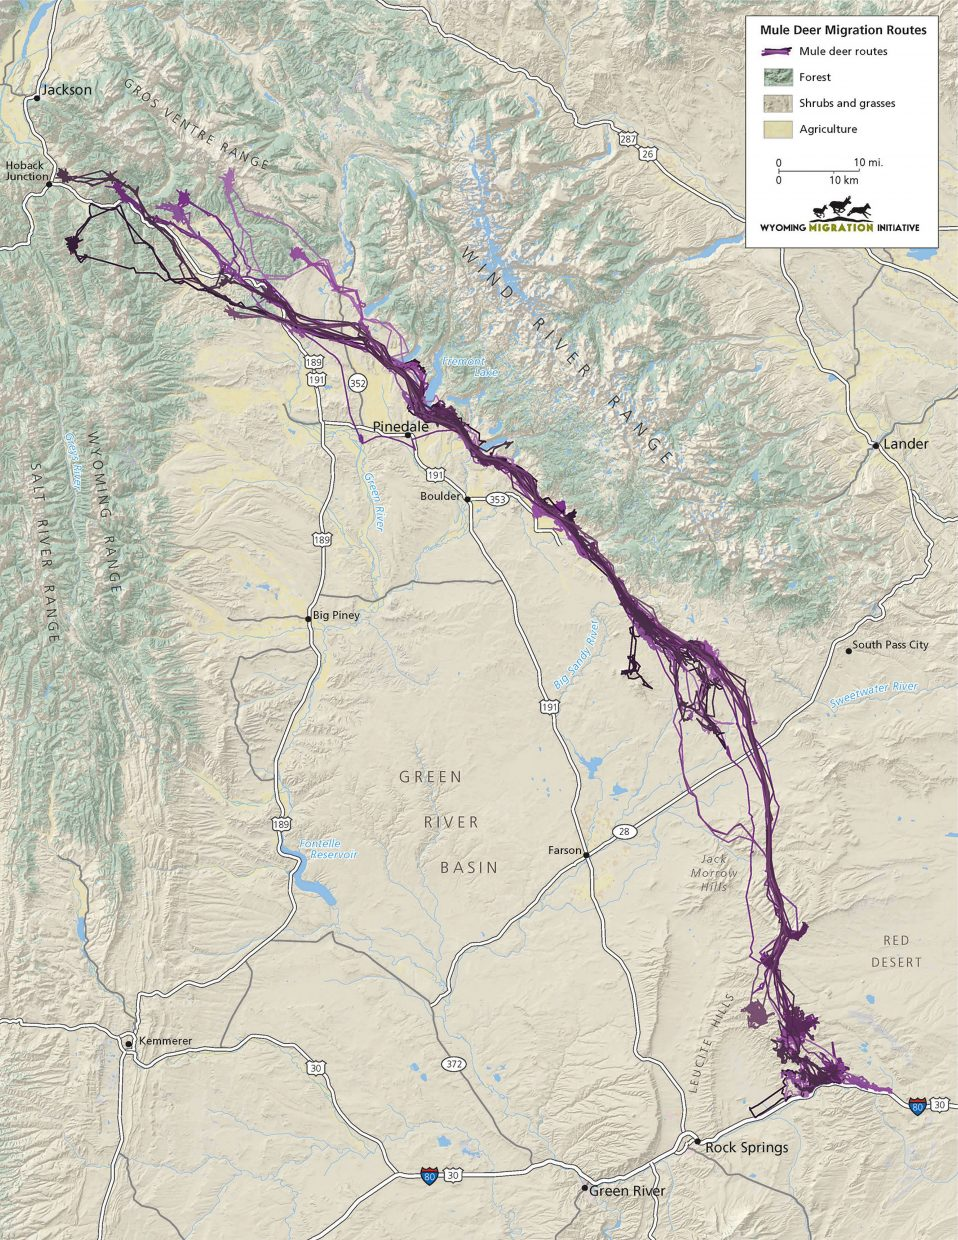 Map of the mule deer Red Desert to Hoback Basin migration stretching 150 miles from Rock Creek, Wyoming, almost to Jackson.